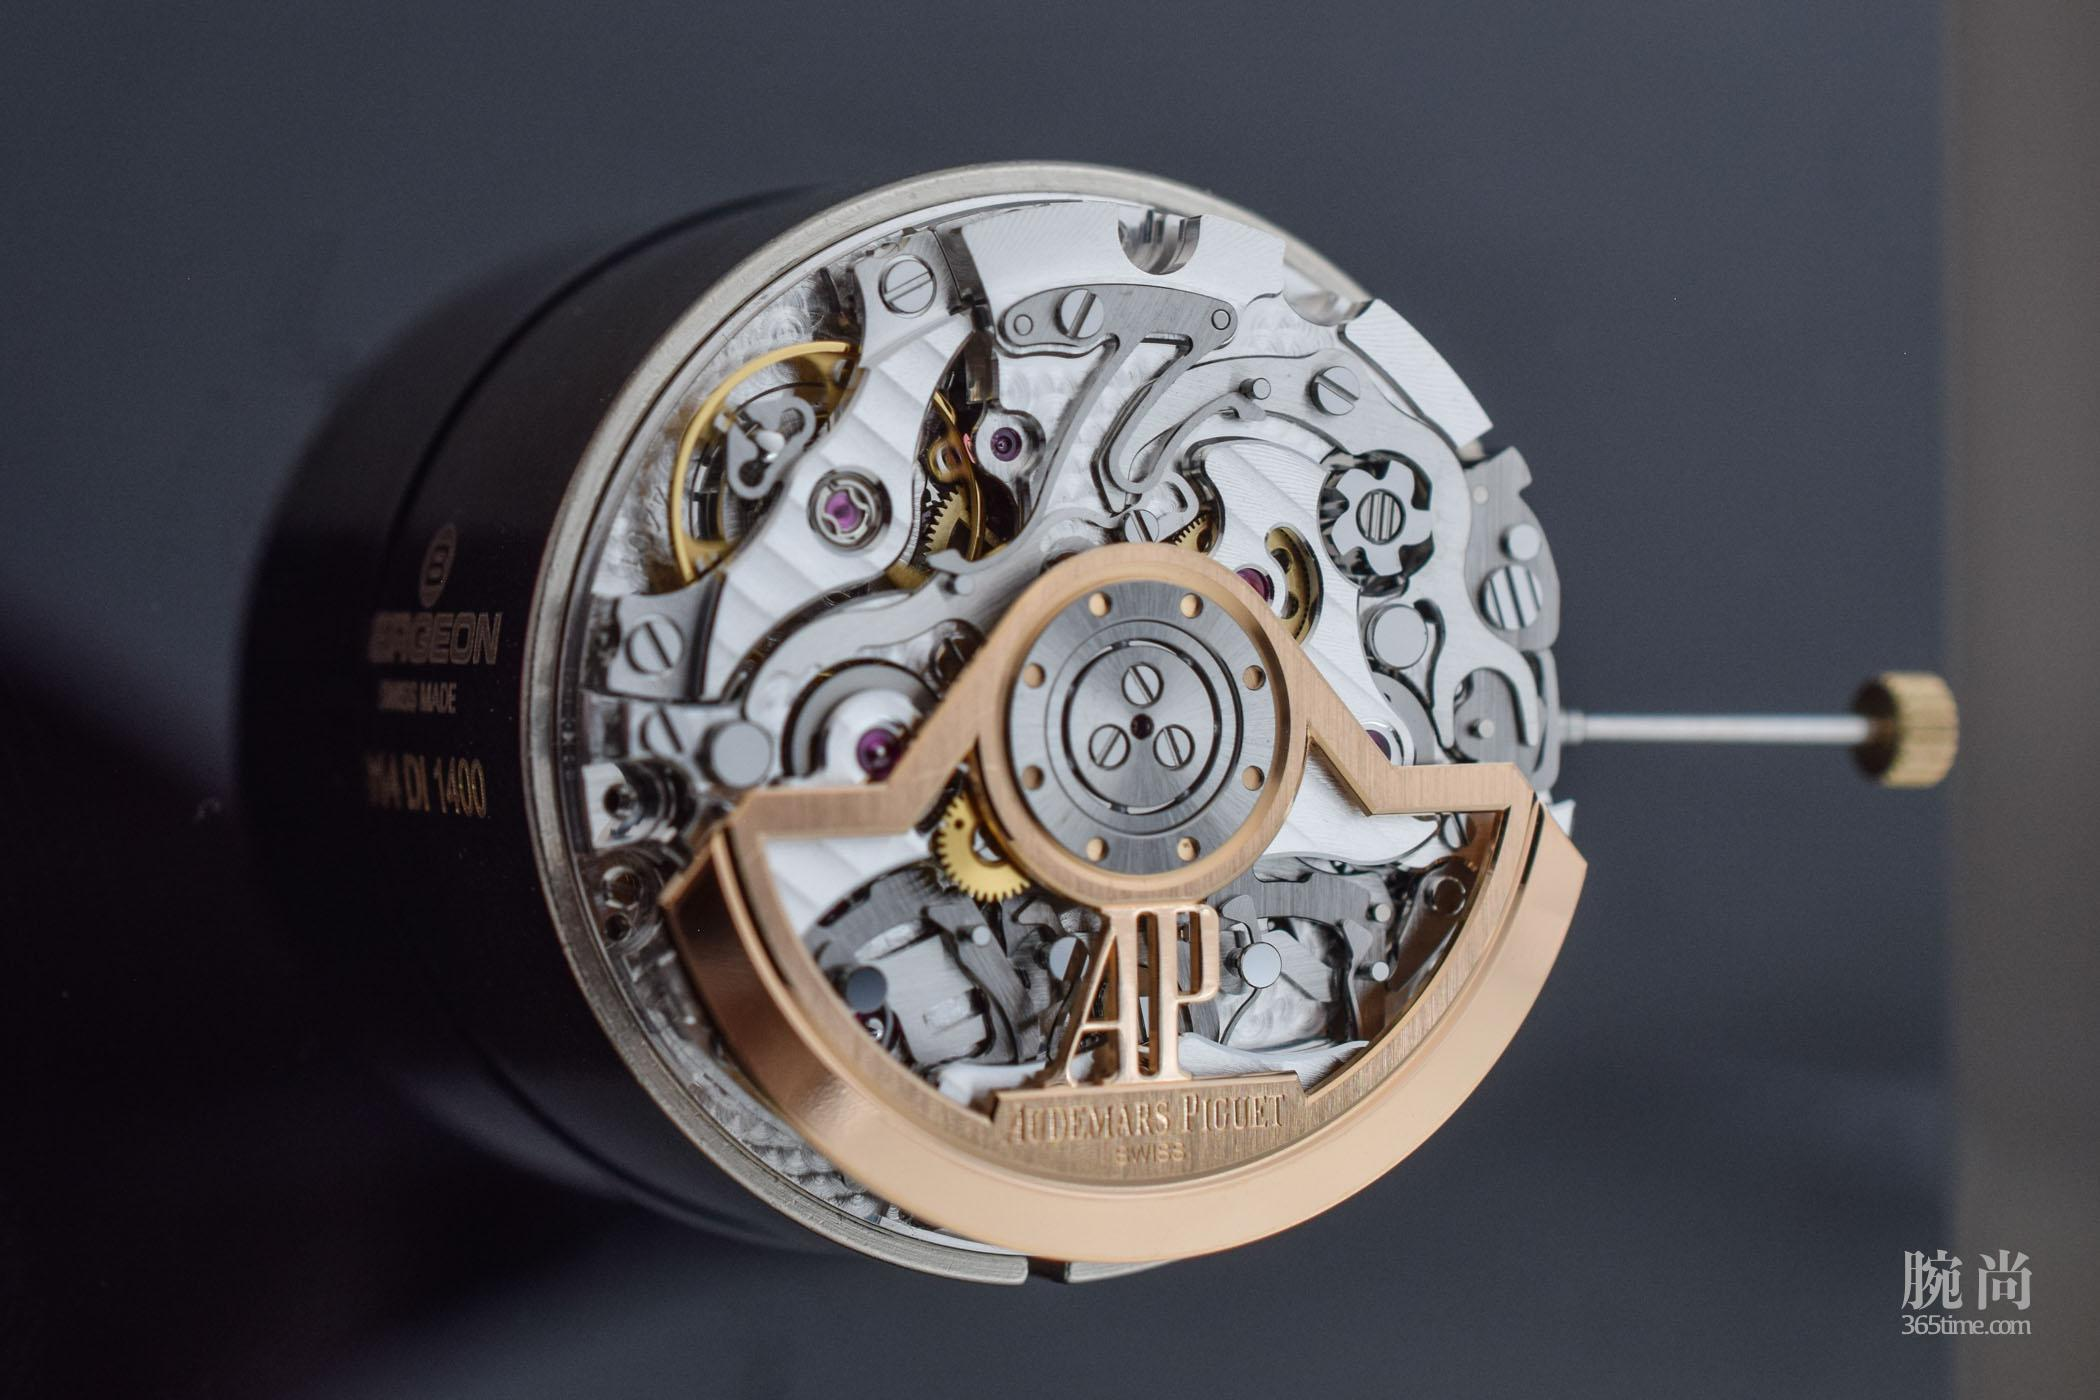 Audemars-Piguet-Calibre-4400-The-New-In-House-Integrated-Chronograph-Code-11.59.jpg